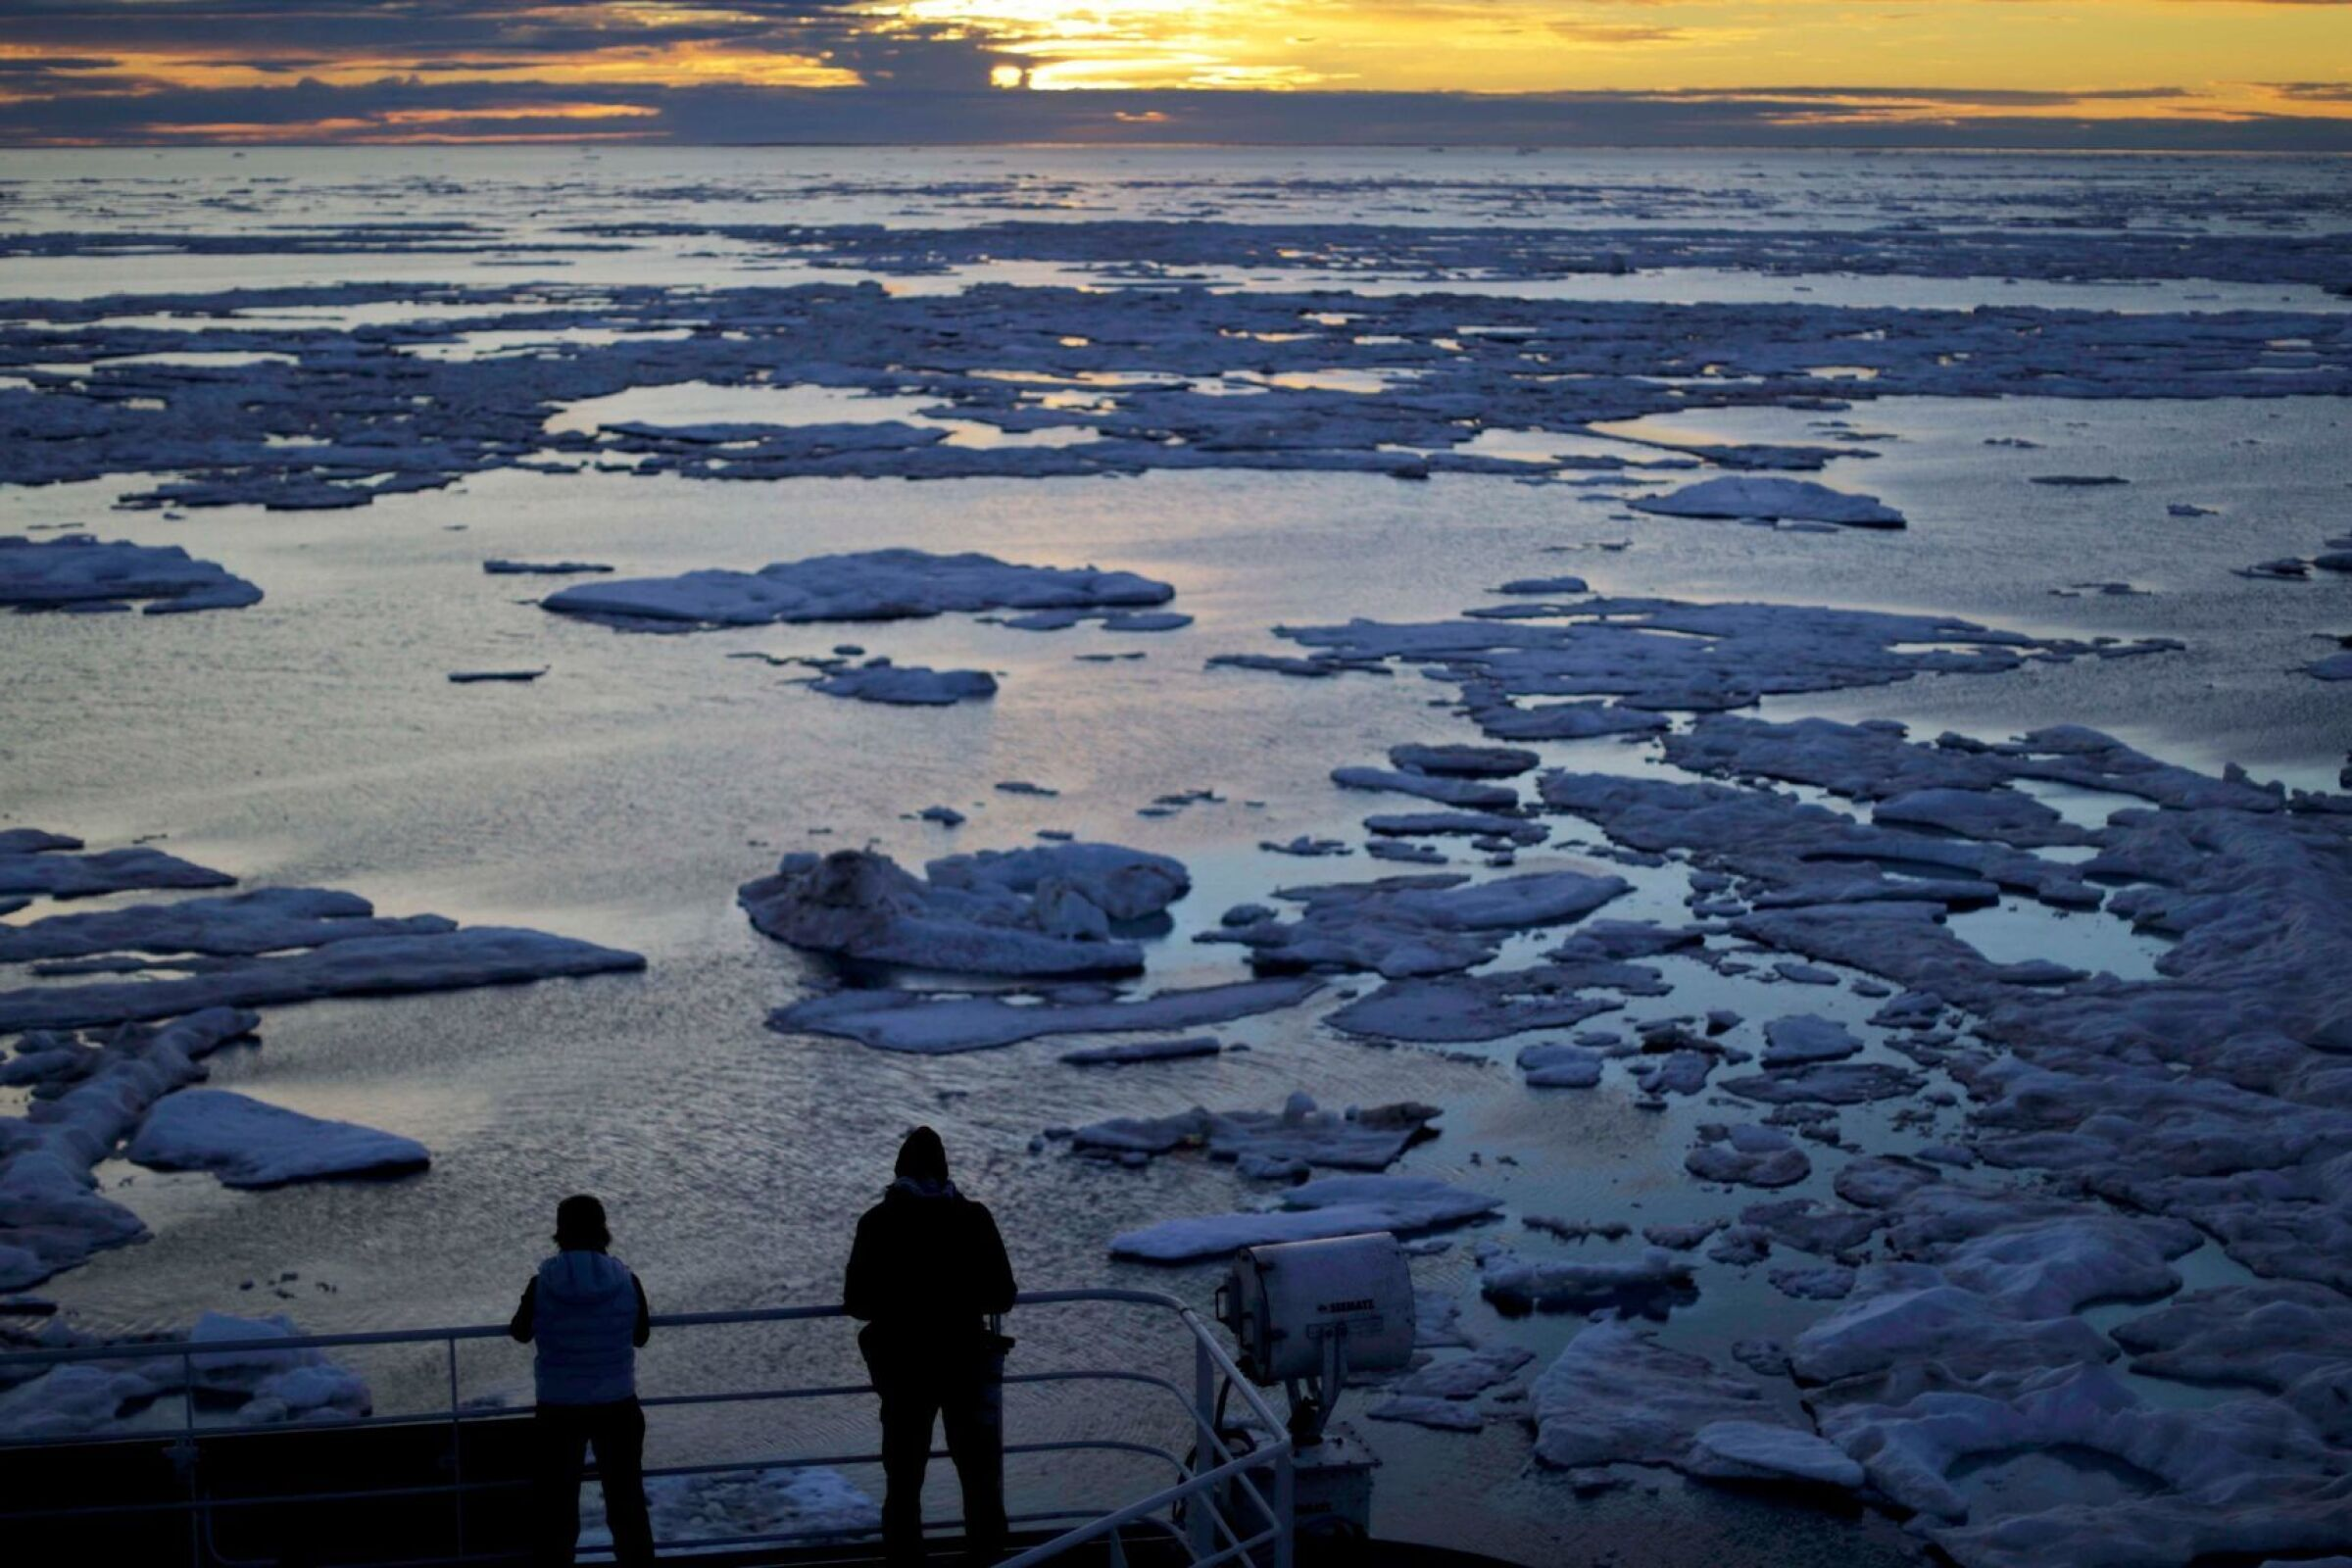 The view from an icebreaker in the Northwest Passage.